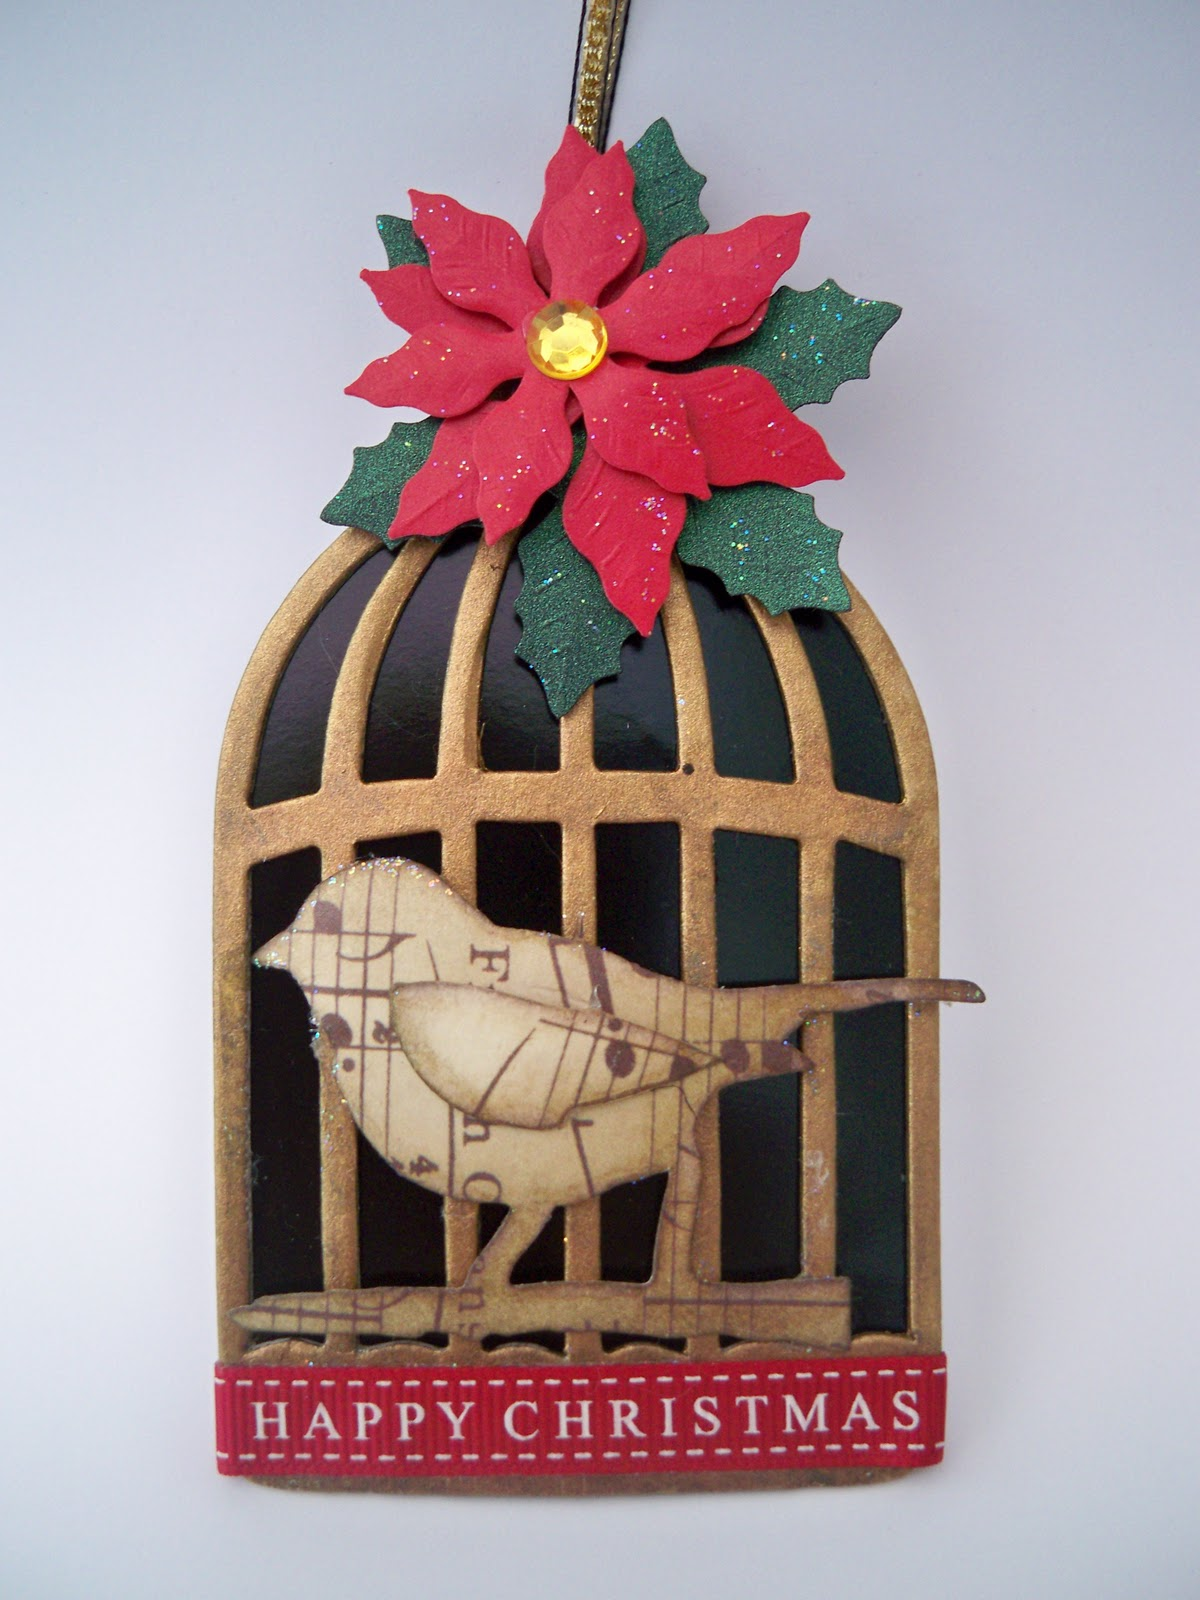 What Shall I Make Today Birdcage Christmas Decoration